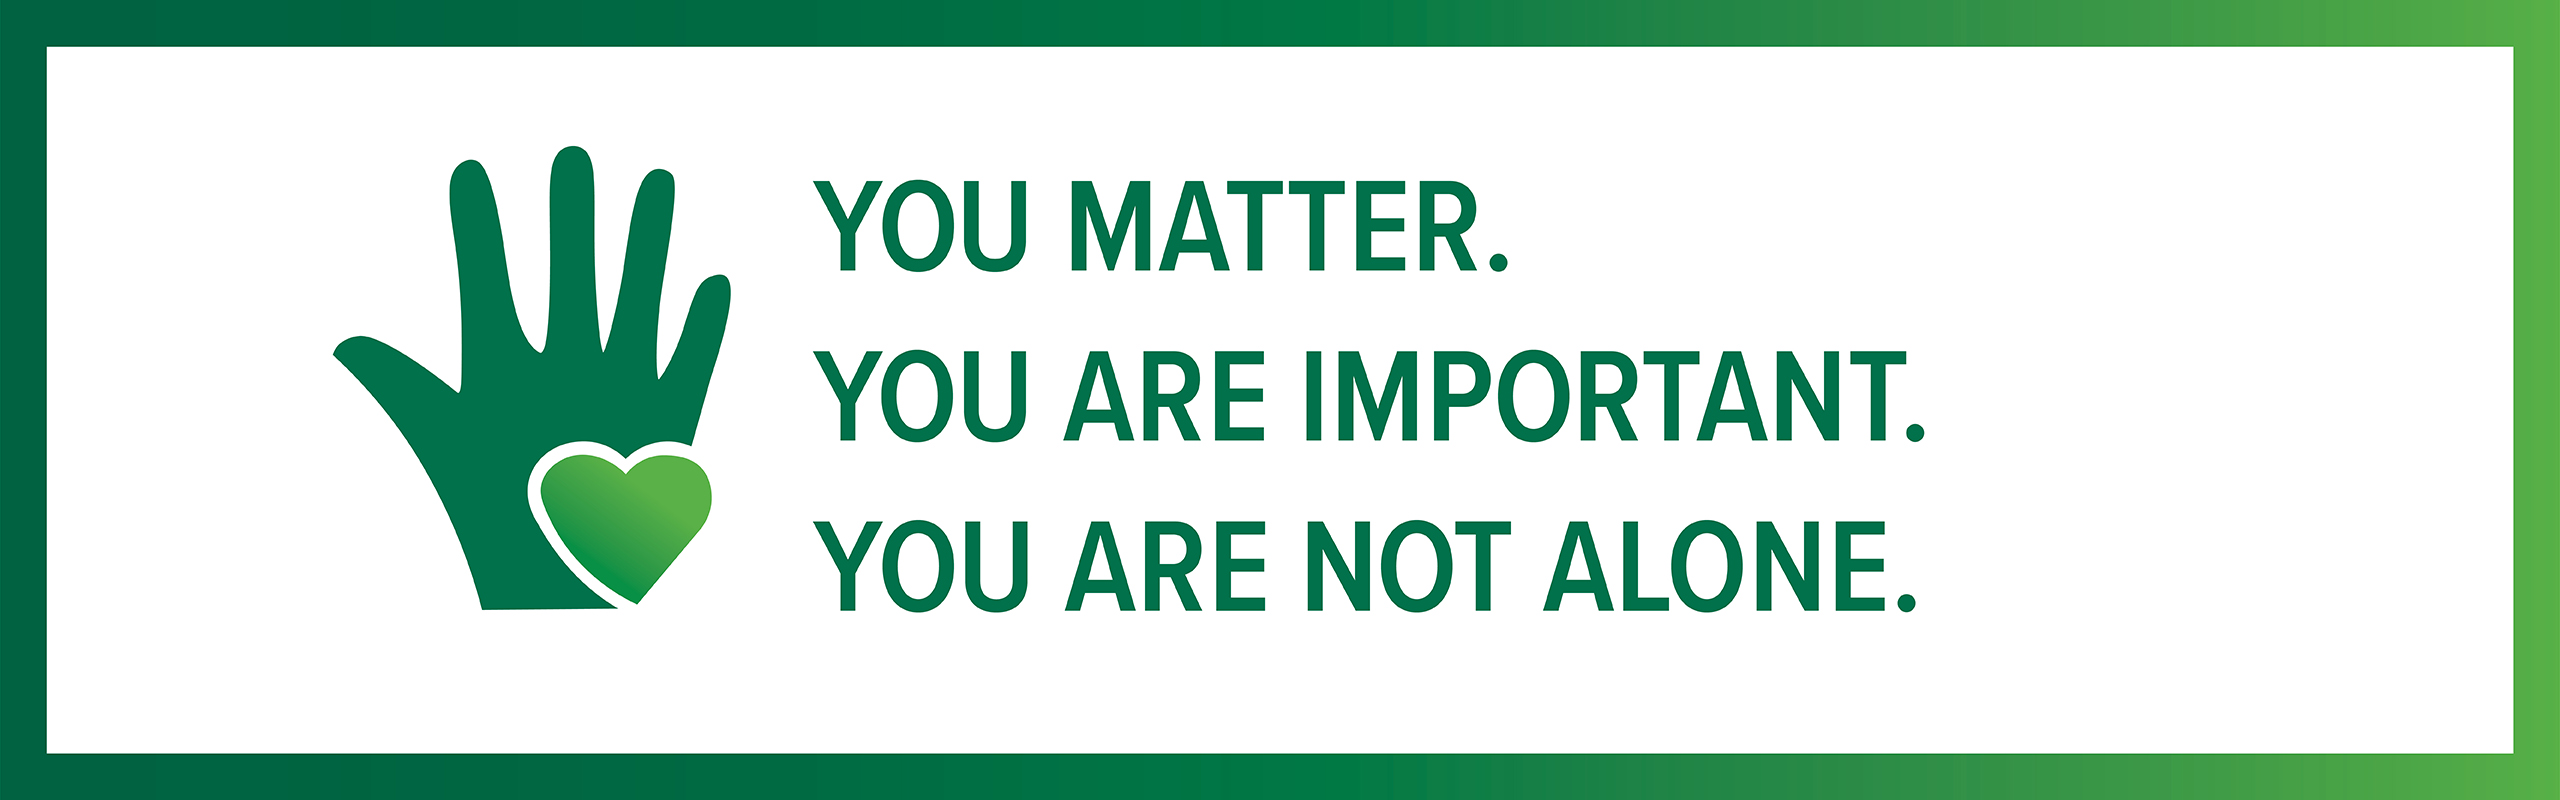 You Matter. You are important. You are not alone.